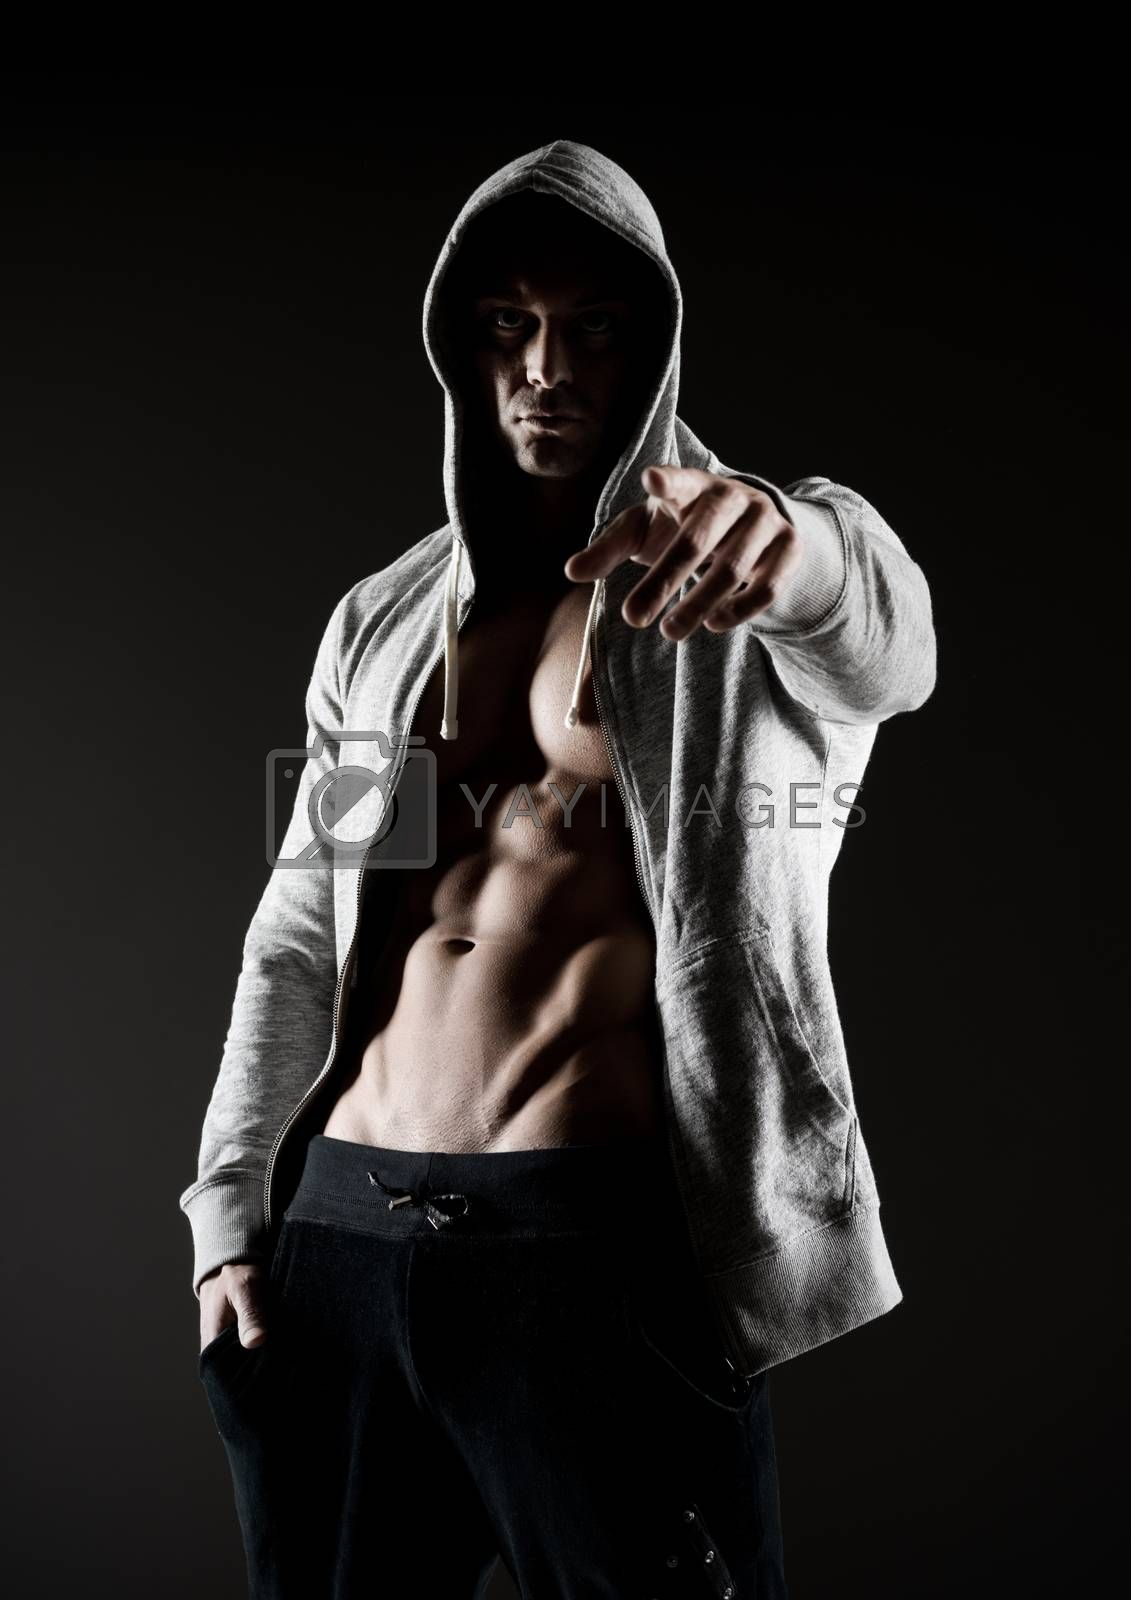 Confident body builder in hooded shirt with bare chest.